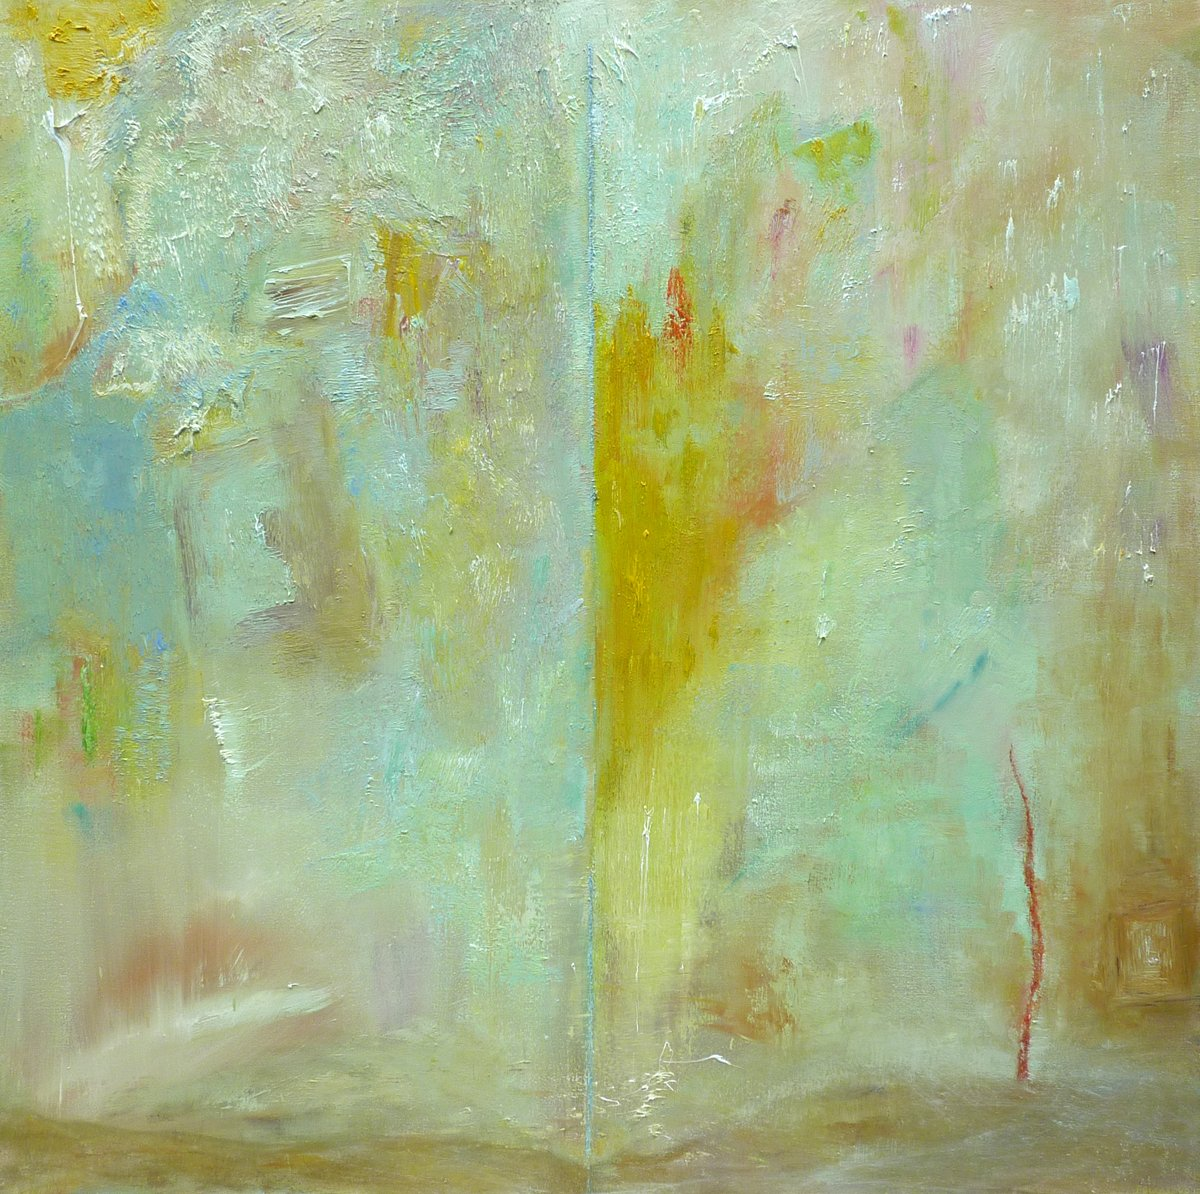 Light and Revelations - Oil on Canvas 120cm x 120cm